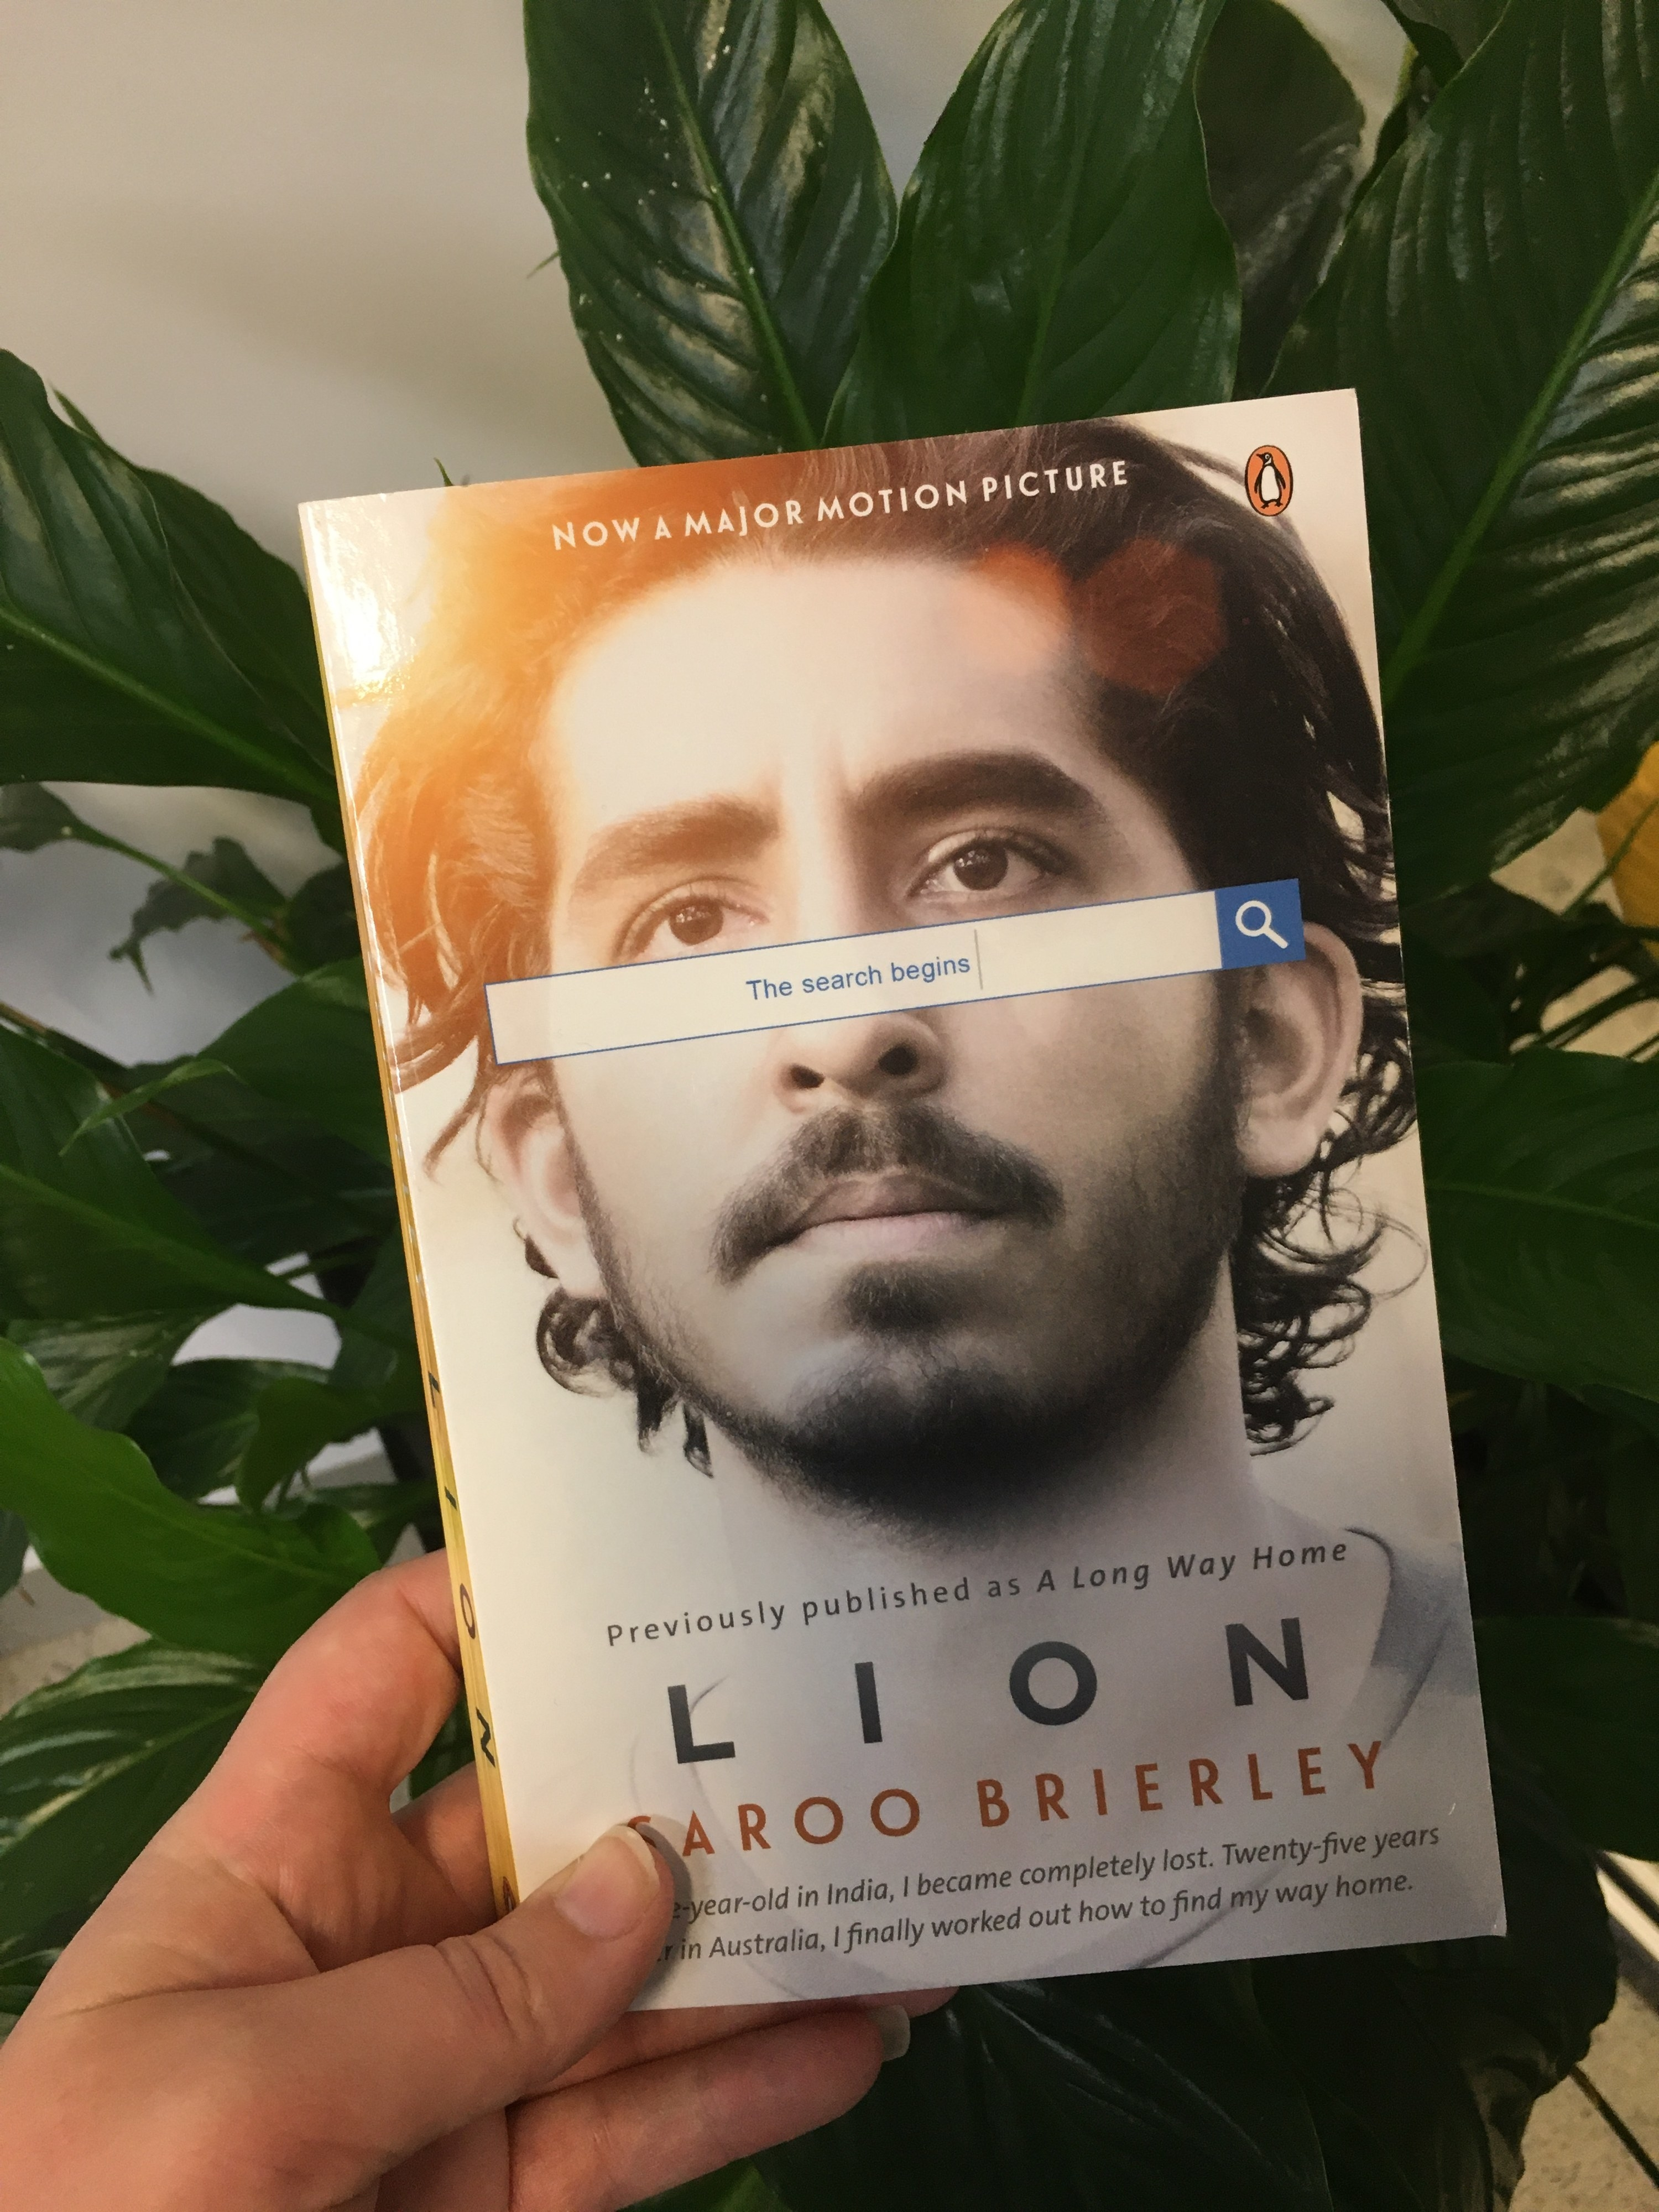 Hand holding book in front of a plant, cover of book is a face with a Google search bar in front of it